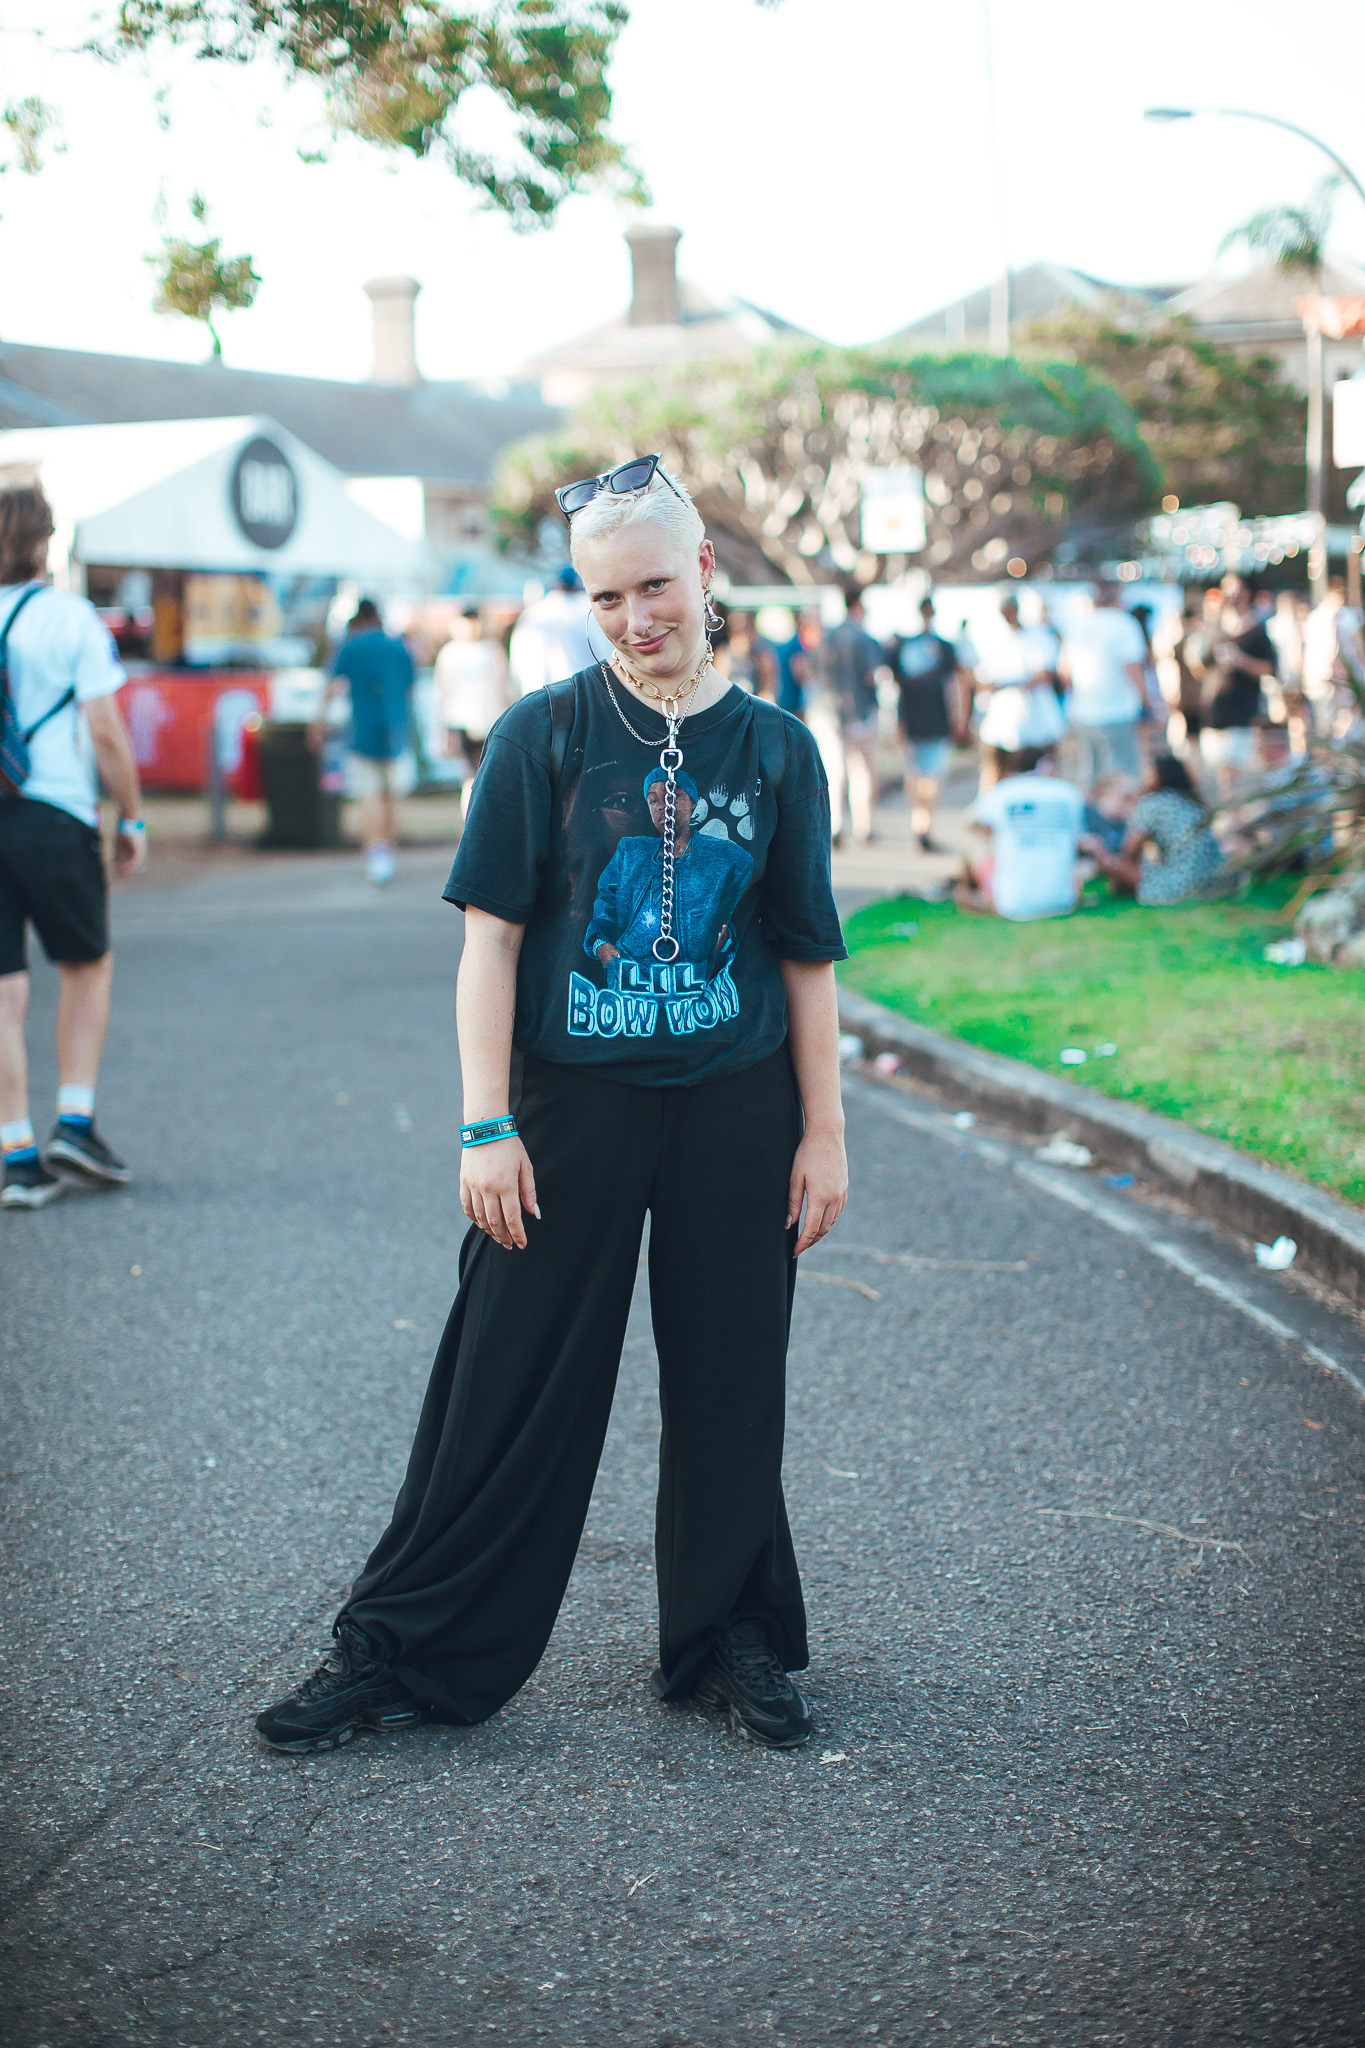 laneway_photo-by-oliver-minnett-00706